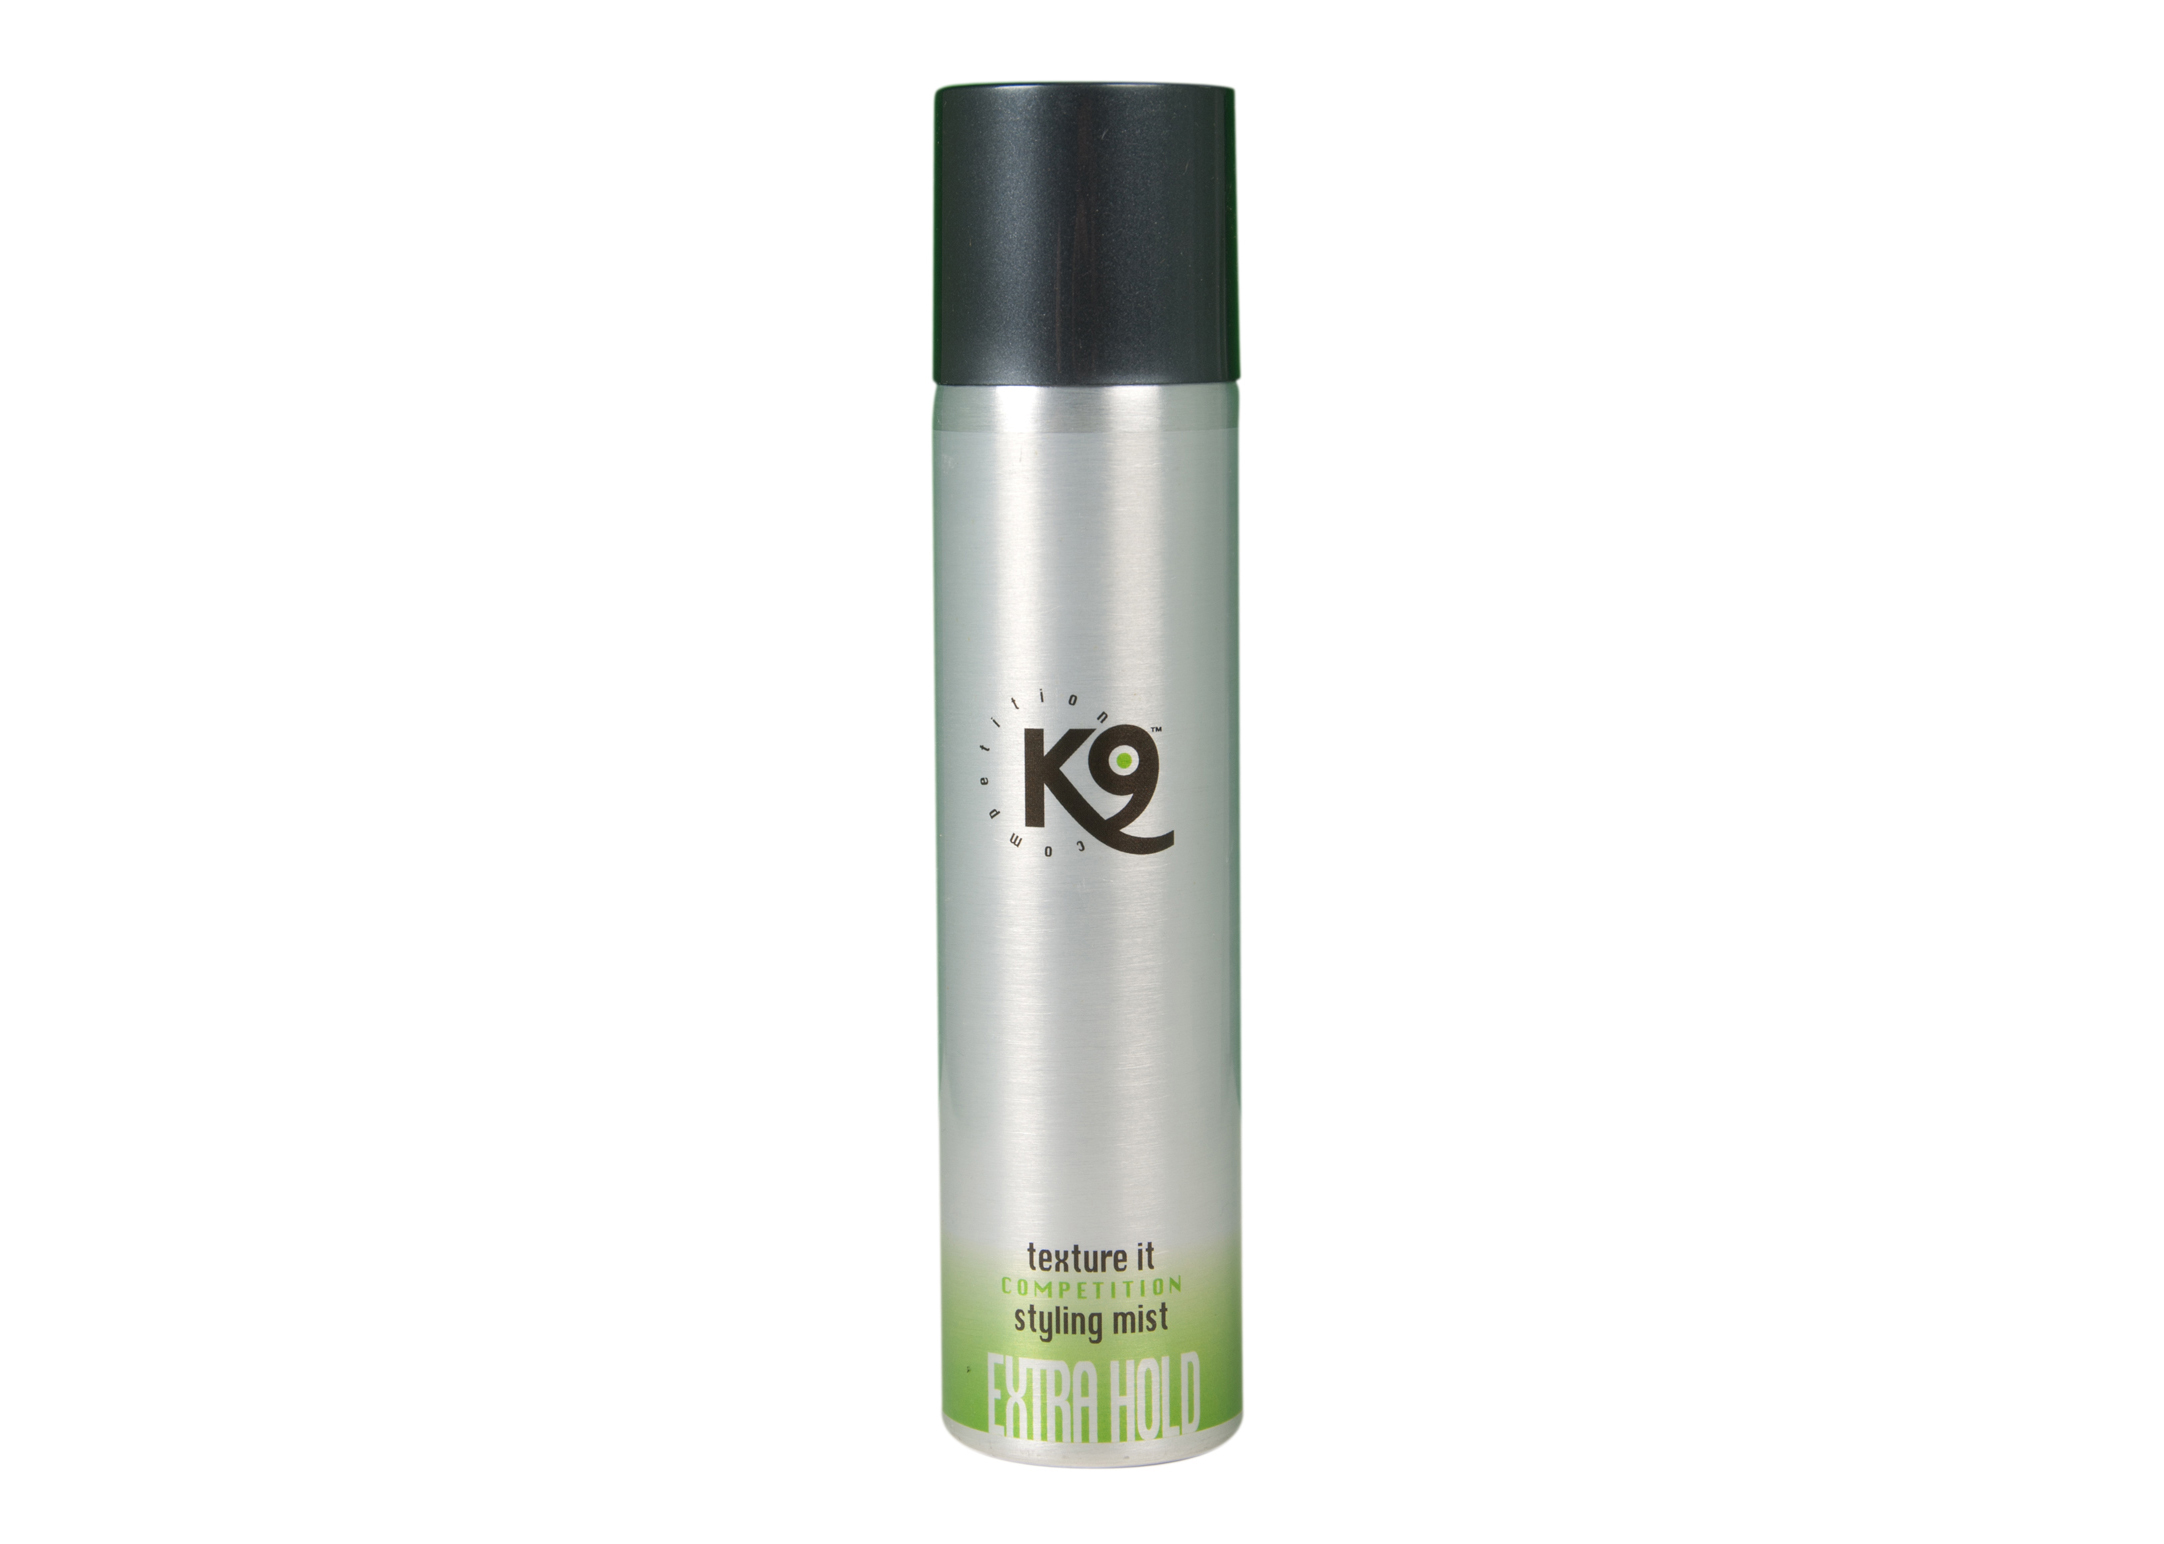 K9 Styling Mist Extra Hold 300ml Spray